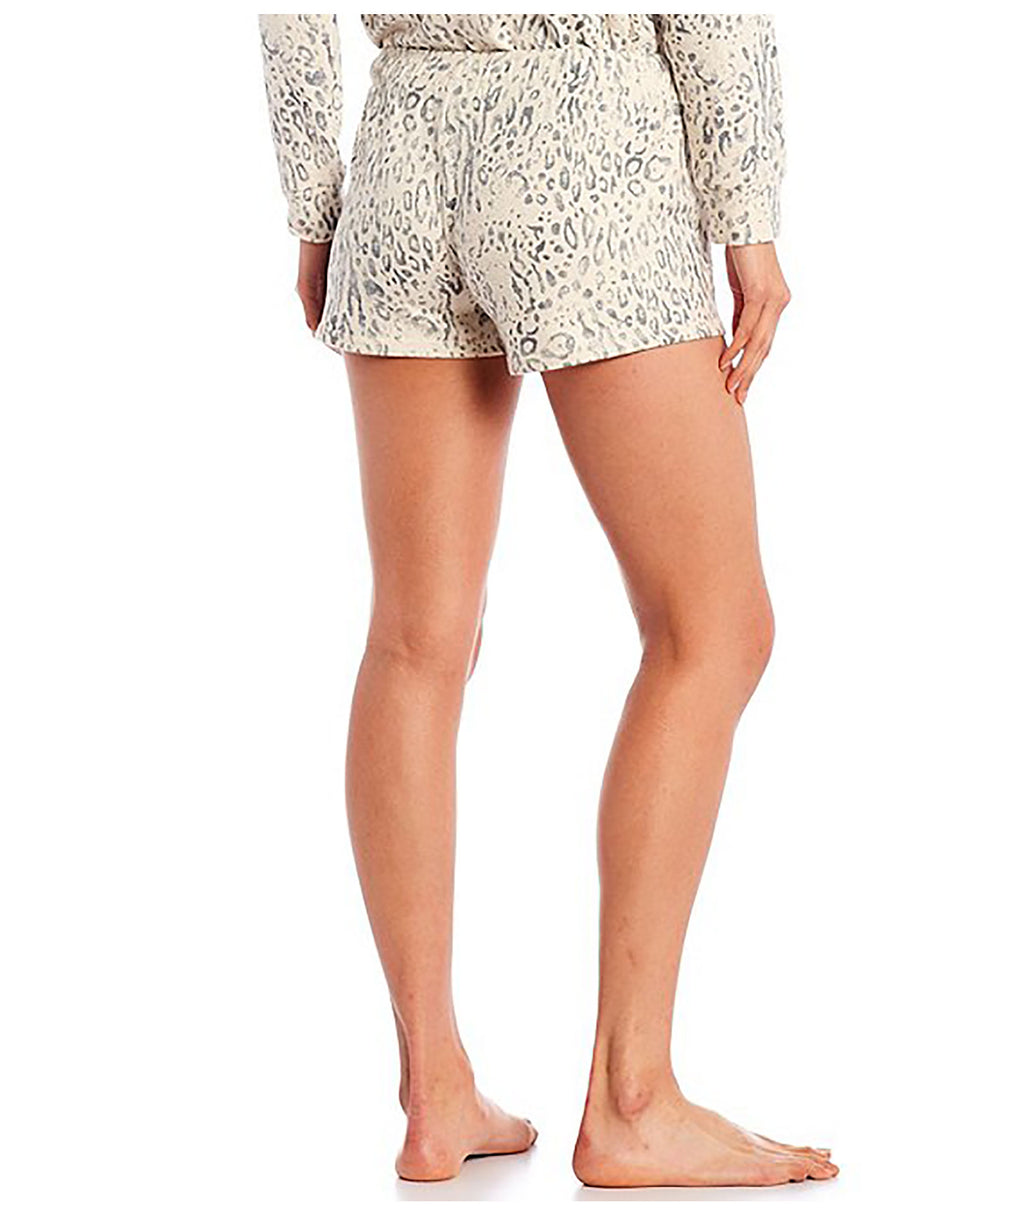 P.J. Salvage Women Oatmeal Leopard Shorts